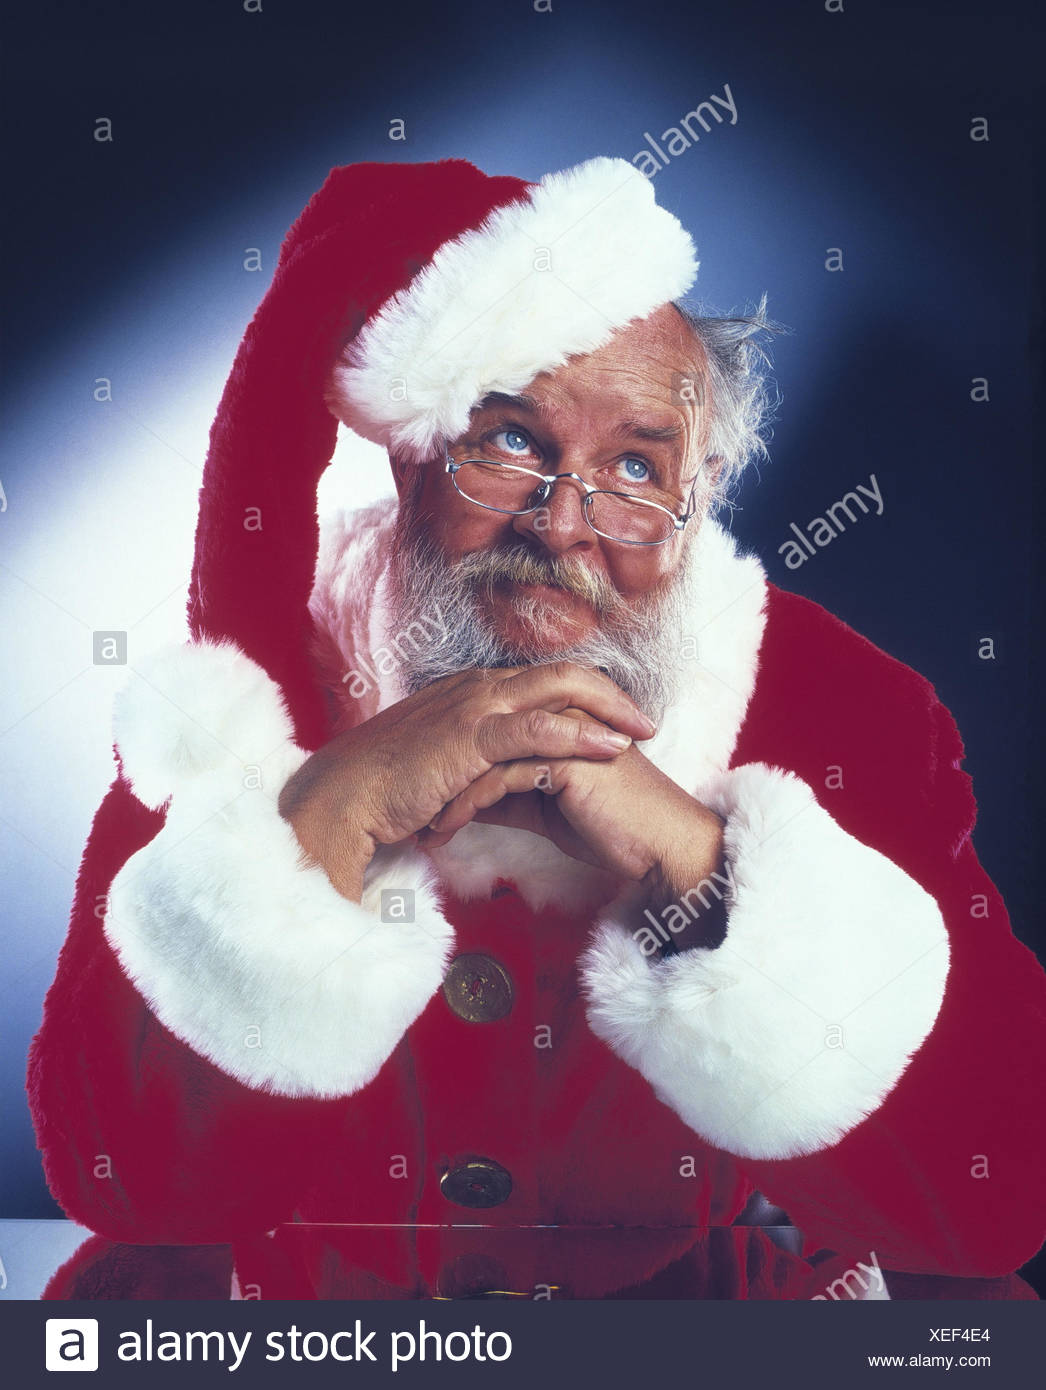 Santa Claus, gesture, desperation, half portrait, Christmas, yule tide, Santa, exhausts, raise the eyes thoughtful, helplessly, think, dealts with, consider, doubtful, studio - Stock Image